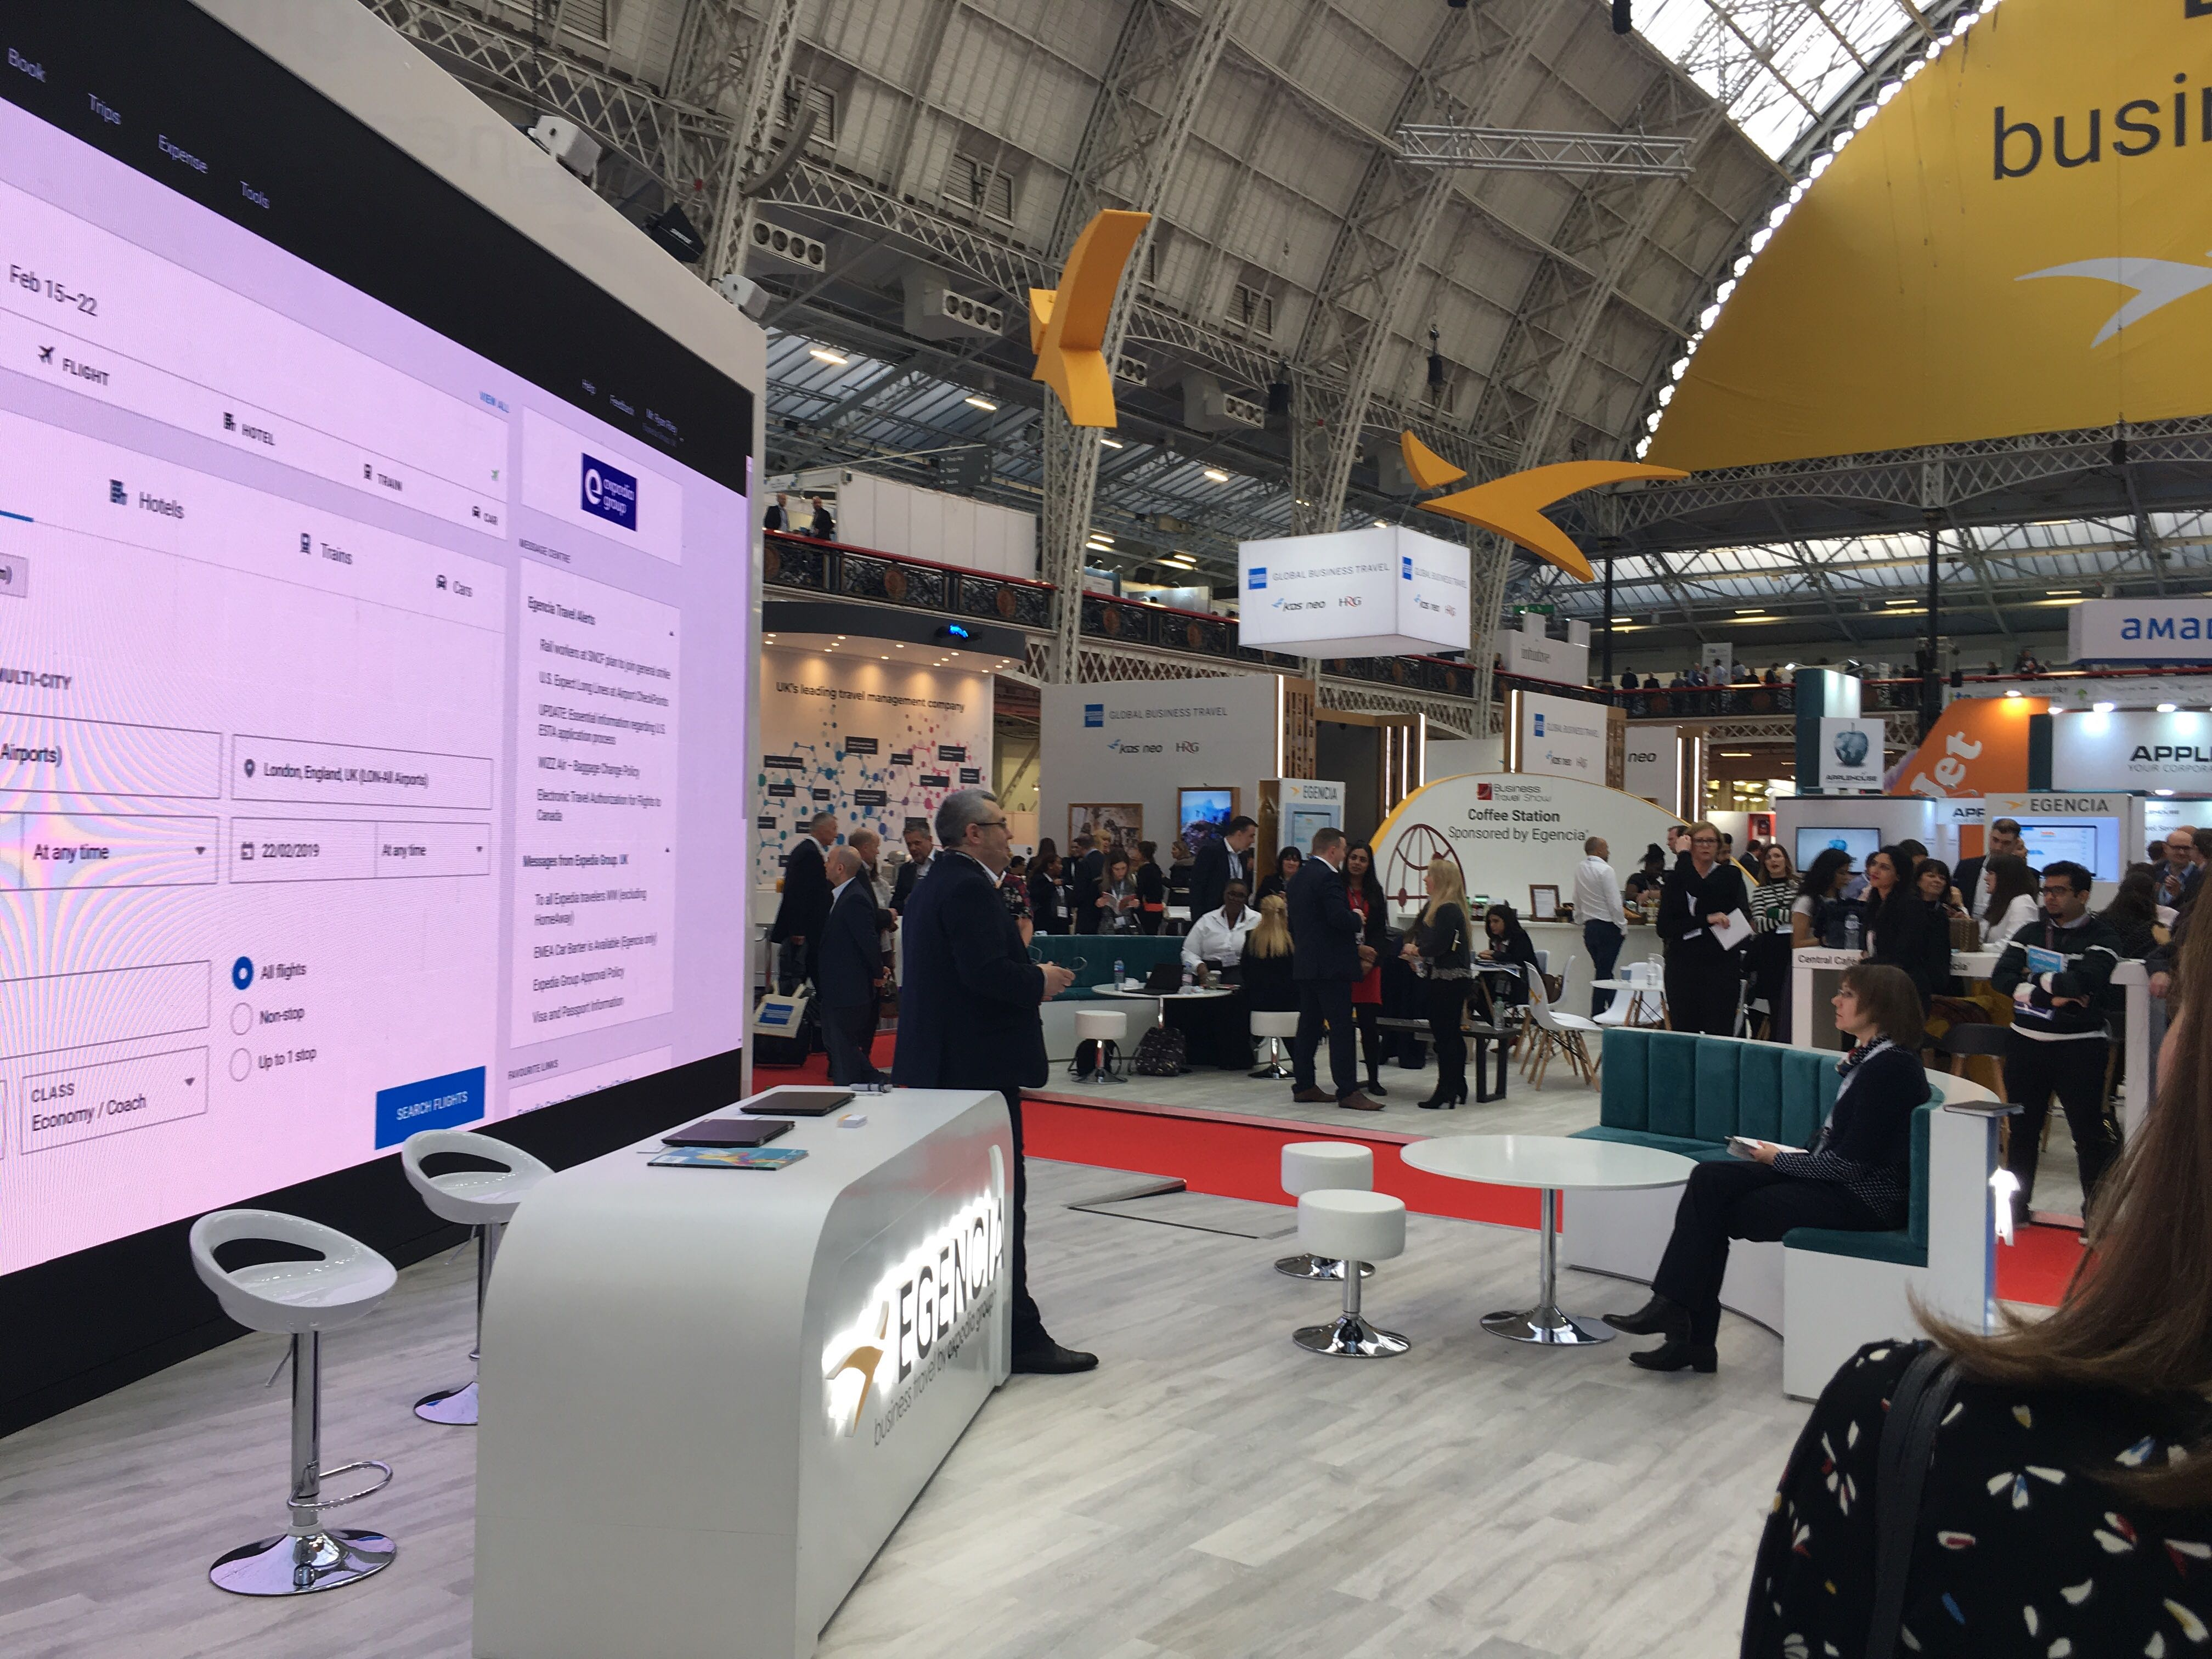 Image of a giant screen in a conference booth displaying the Egencia homepage at a large business travel conference in Europe. Lots of people milling around.